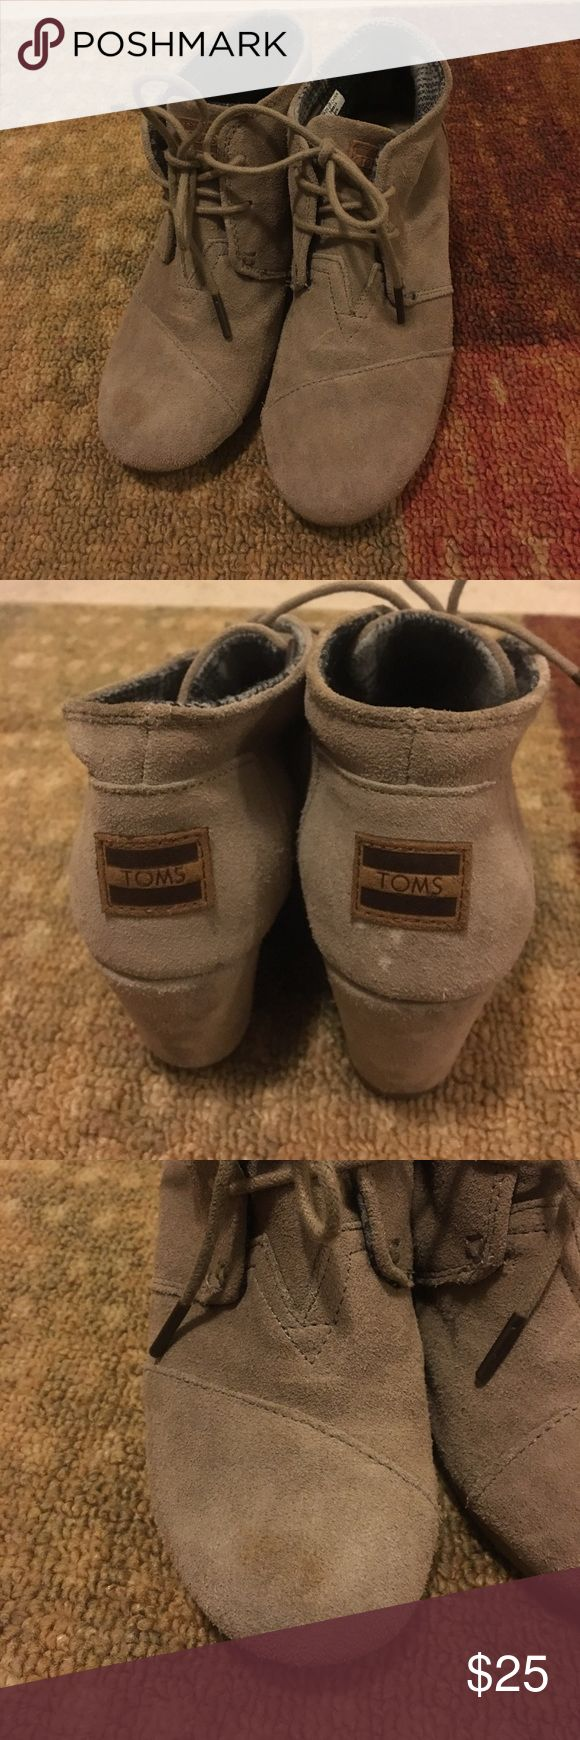 TOM's Desert Wedge booties! Size 6W Well loved but still in great condition TOM wedge booties in desert color. So comfortable and easy to style for fall! There are some scuff marks as shown in pictures. Open to offers Toms Shoes Ankle Boots & Booties